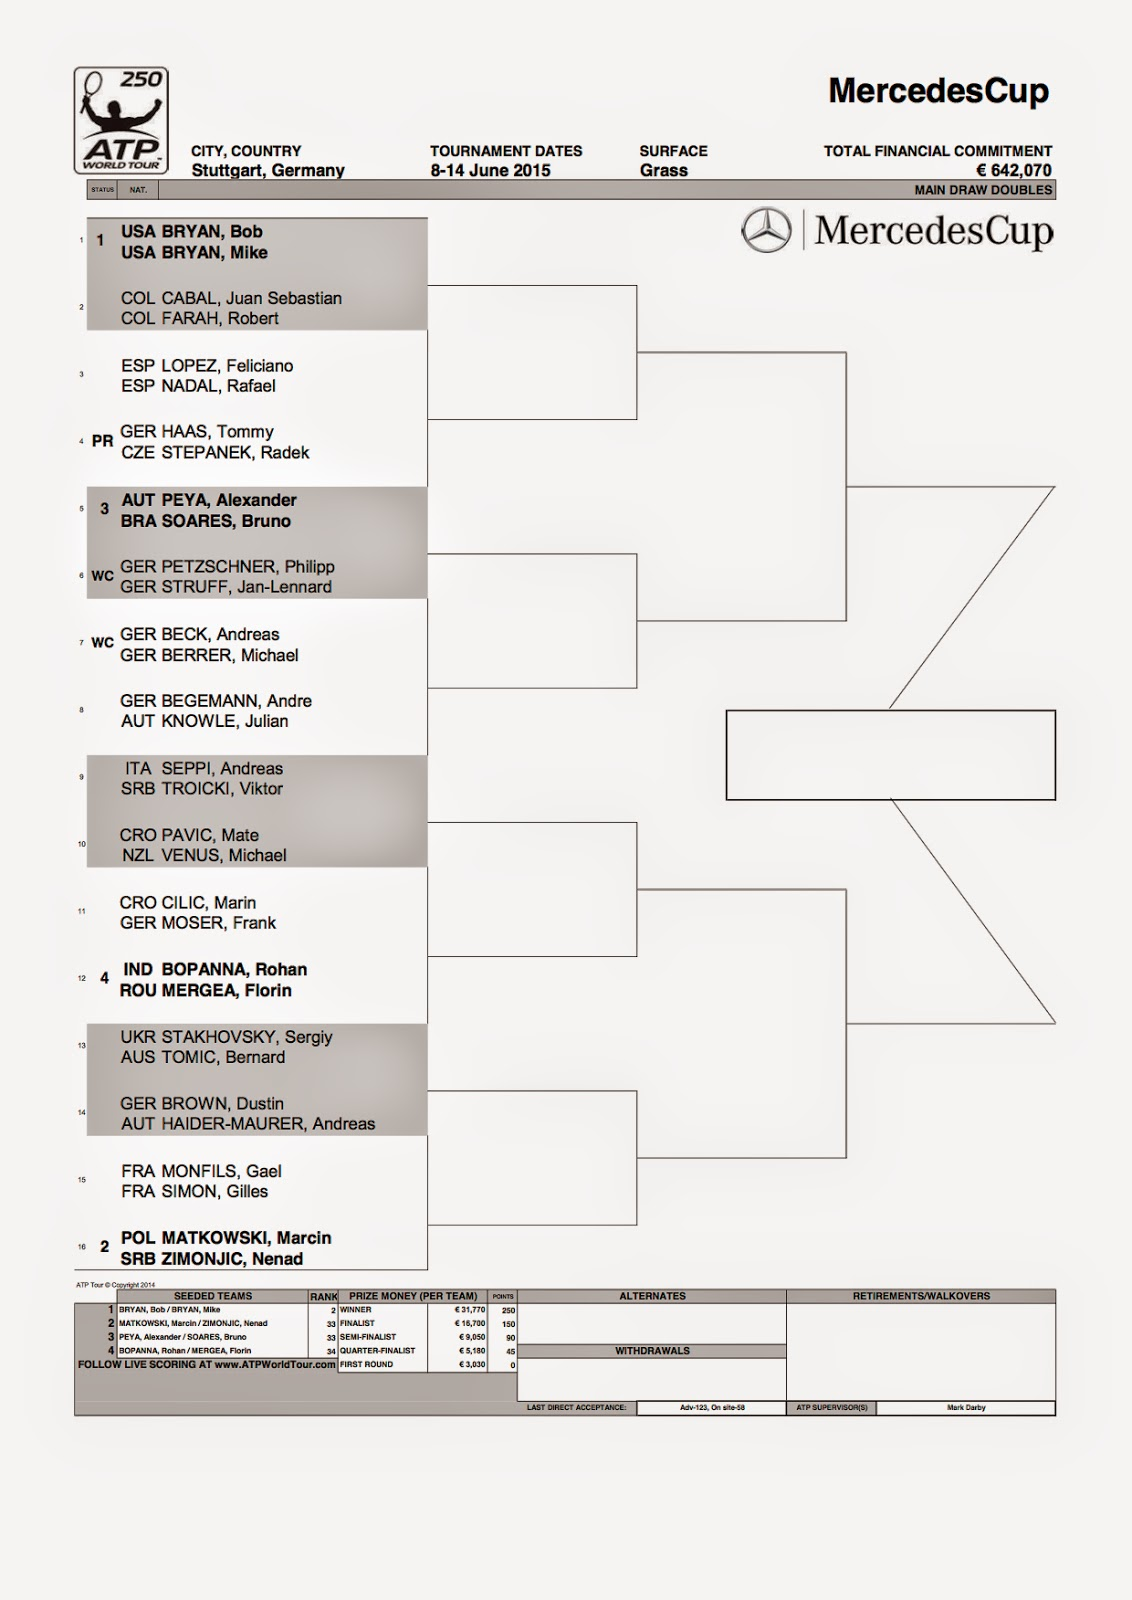 Mercedes Cup 2015 Draw